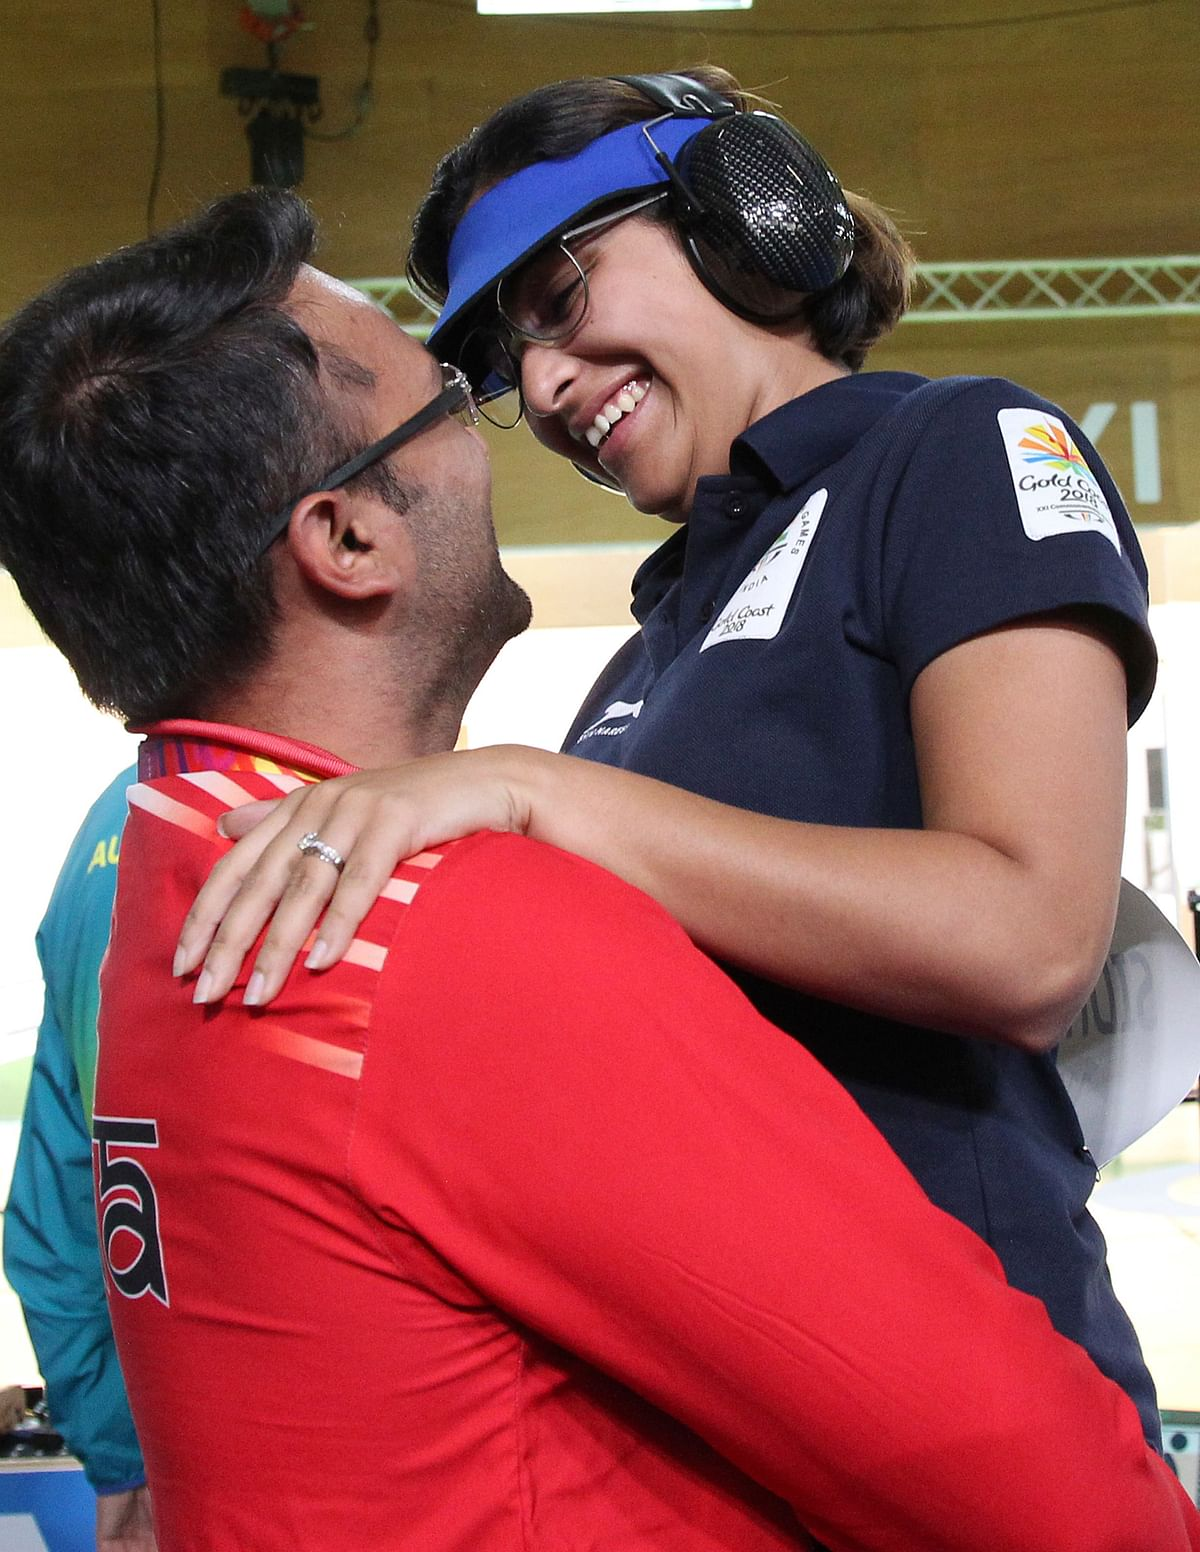 Heena Sidhu, right, celebrates with her husband and coach Ronak Pandit, left, after winning the gold medal during the women's 25m Pistol final at the Belmont Shooting Centre during the 2018 Commonwealth Games in Brisbane